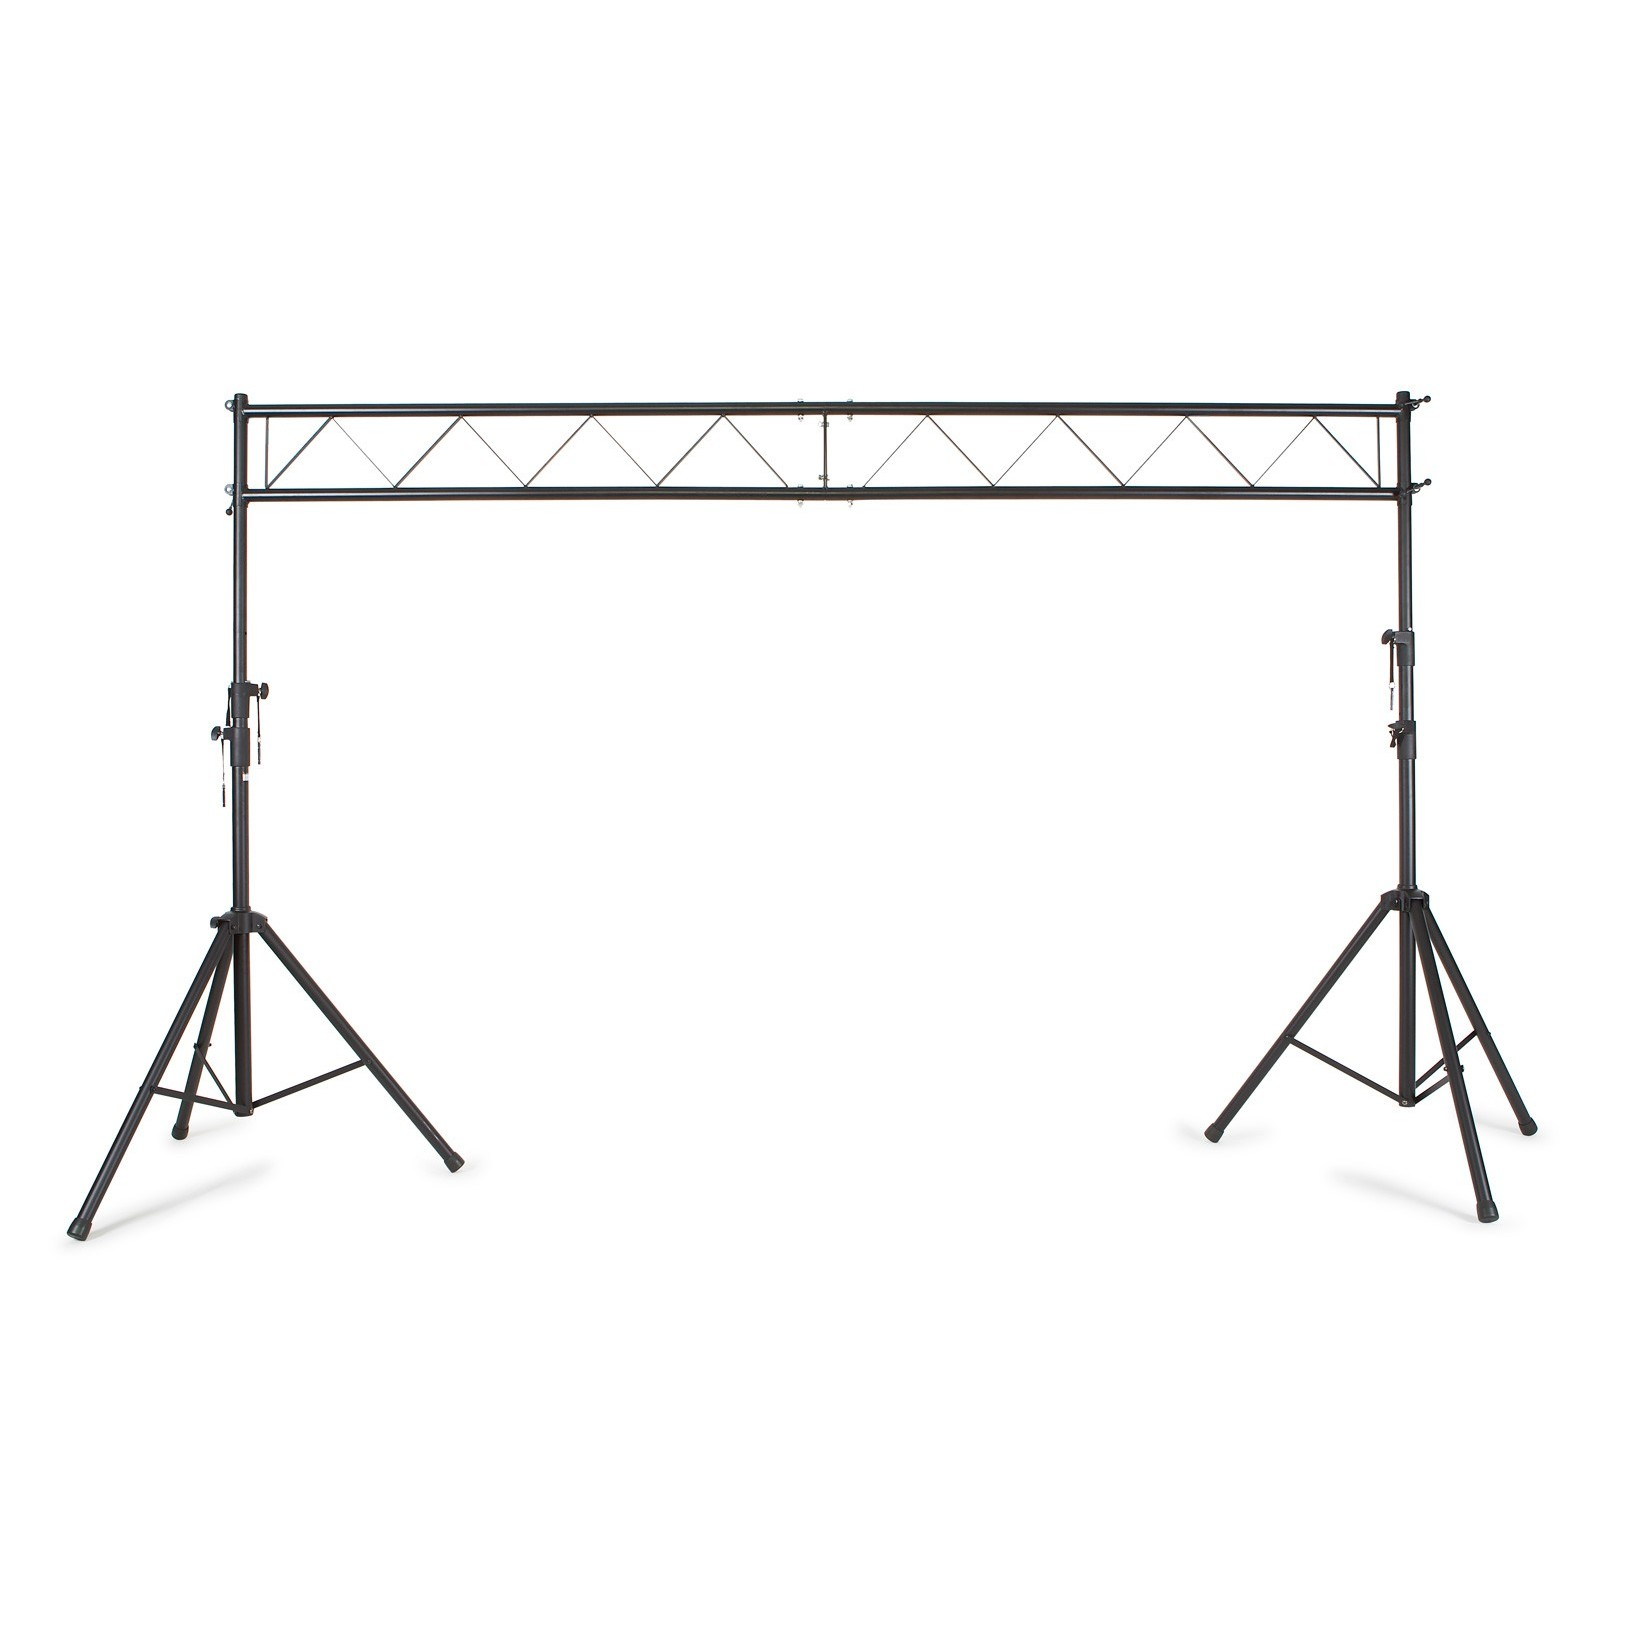 Jumper De Luces Truss Up 3 Meters High Altitude, Adjustable, Fonestar RL420D, Built With Tubes De 5mm DIA Iron Set